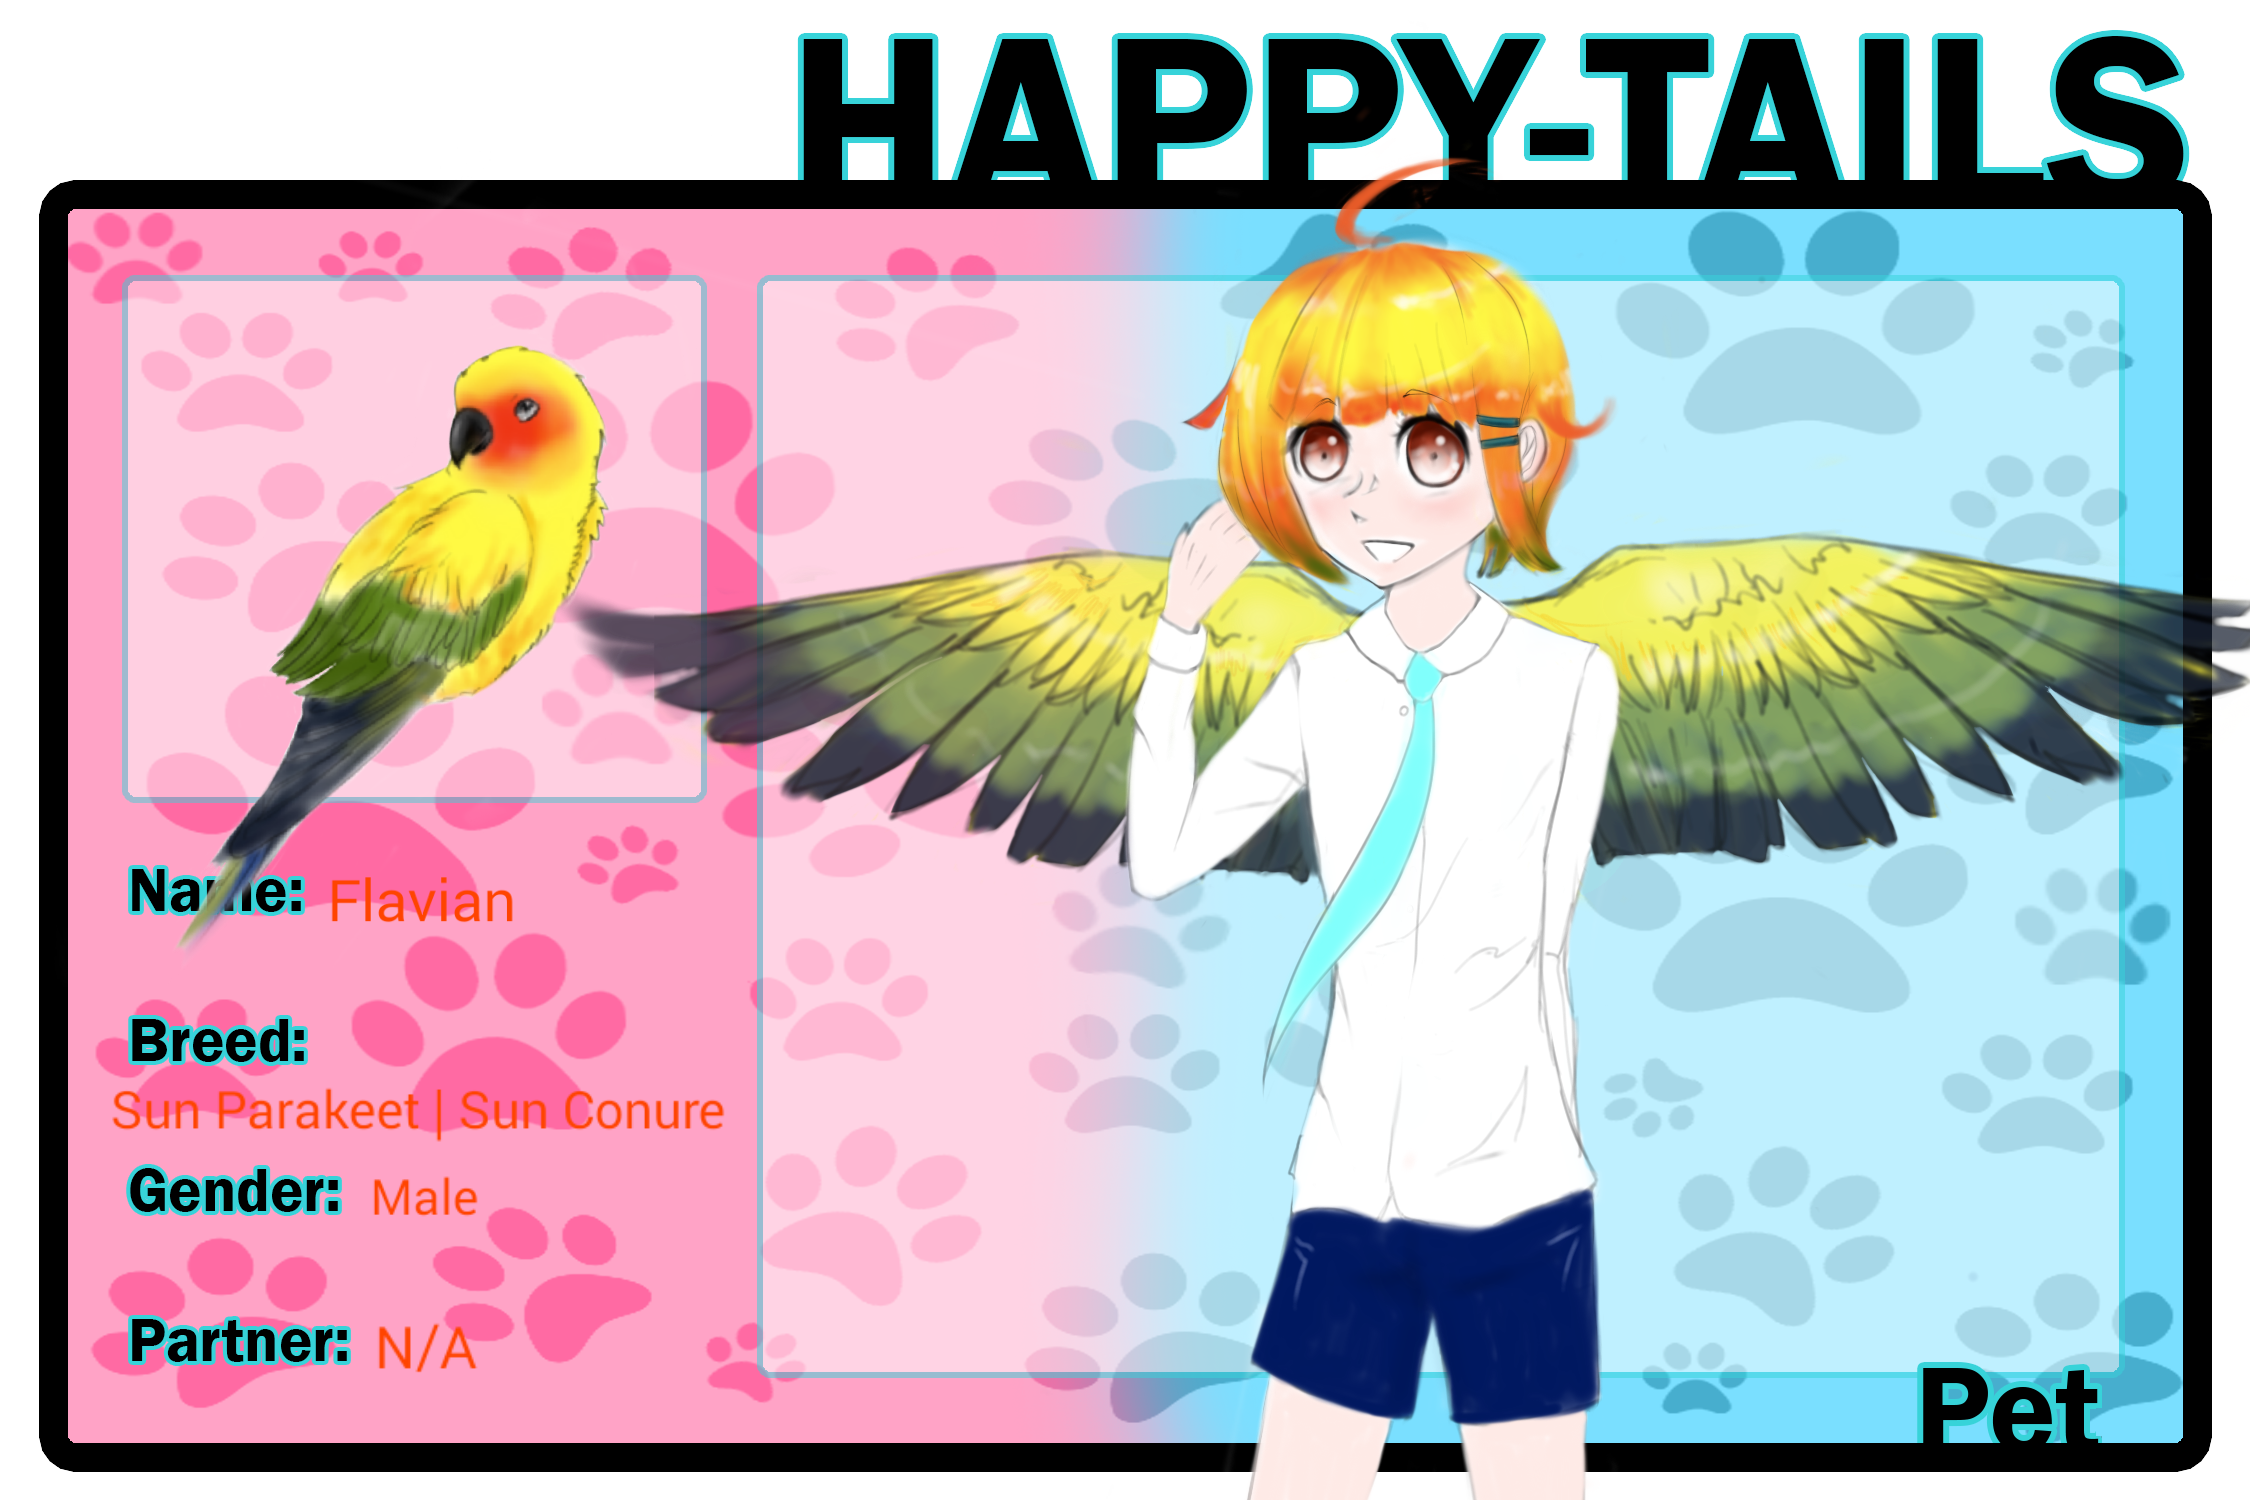 Sun conure clipart png banner free library HT] Flavian by Moneybee-Chan on DeviantArt banner free library